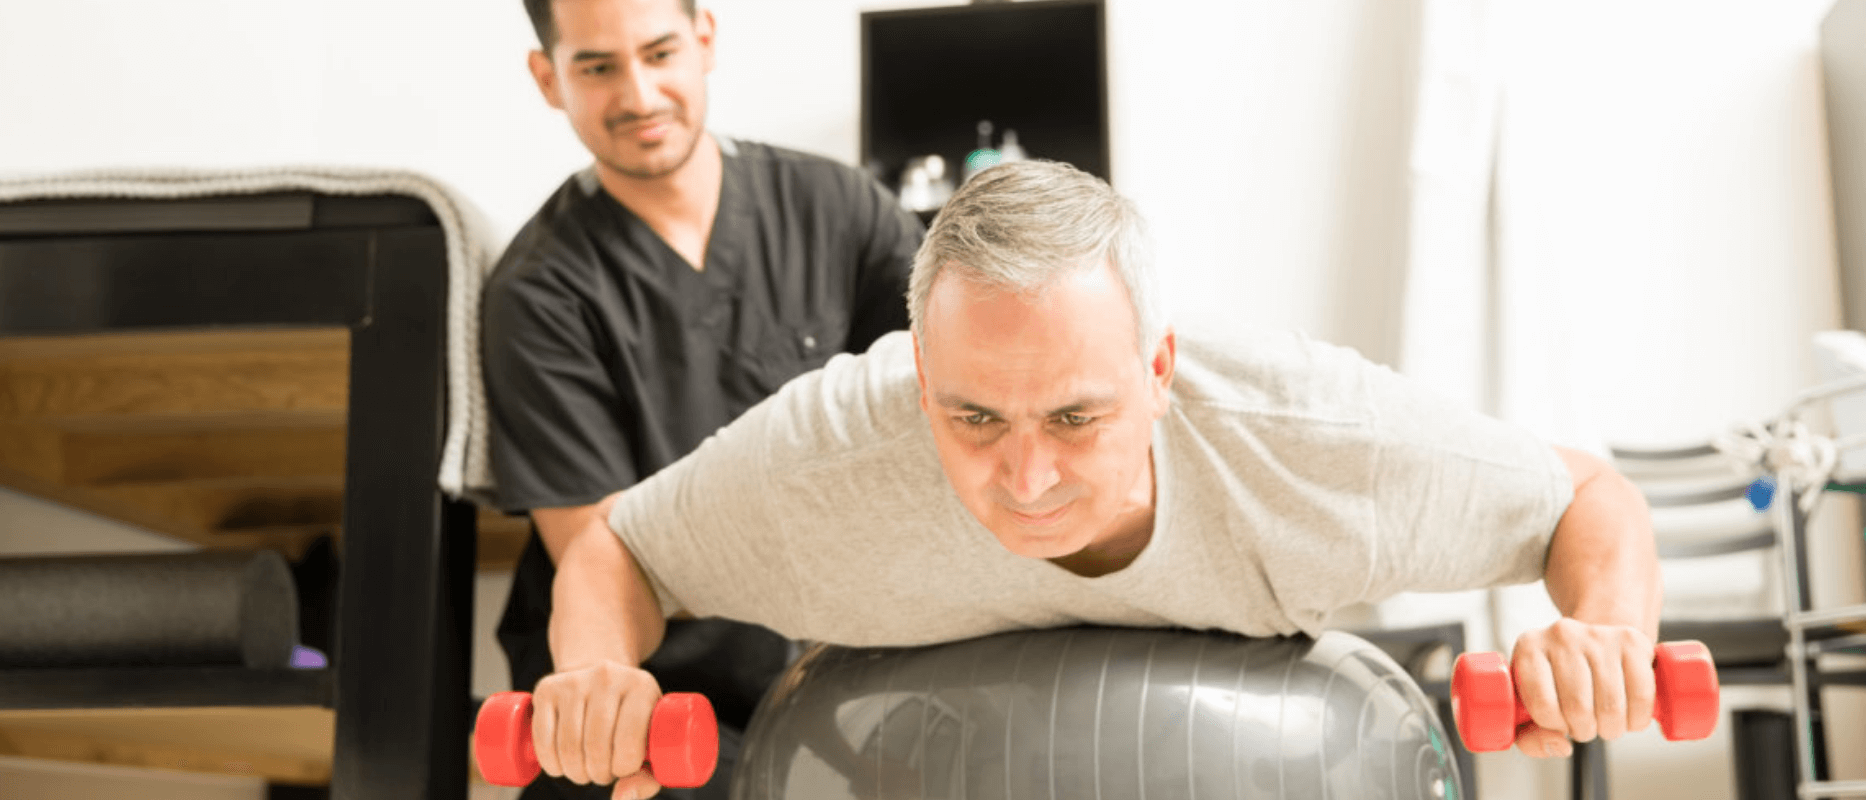 is-arthritis-paining-you-physical-therapy-can-help